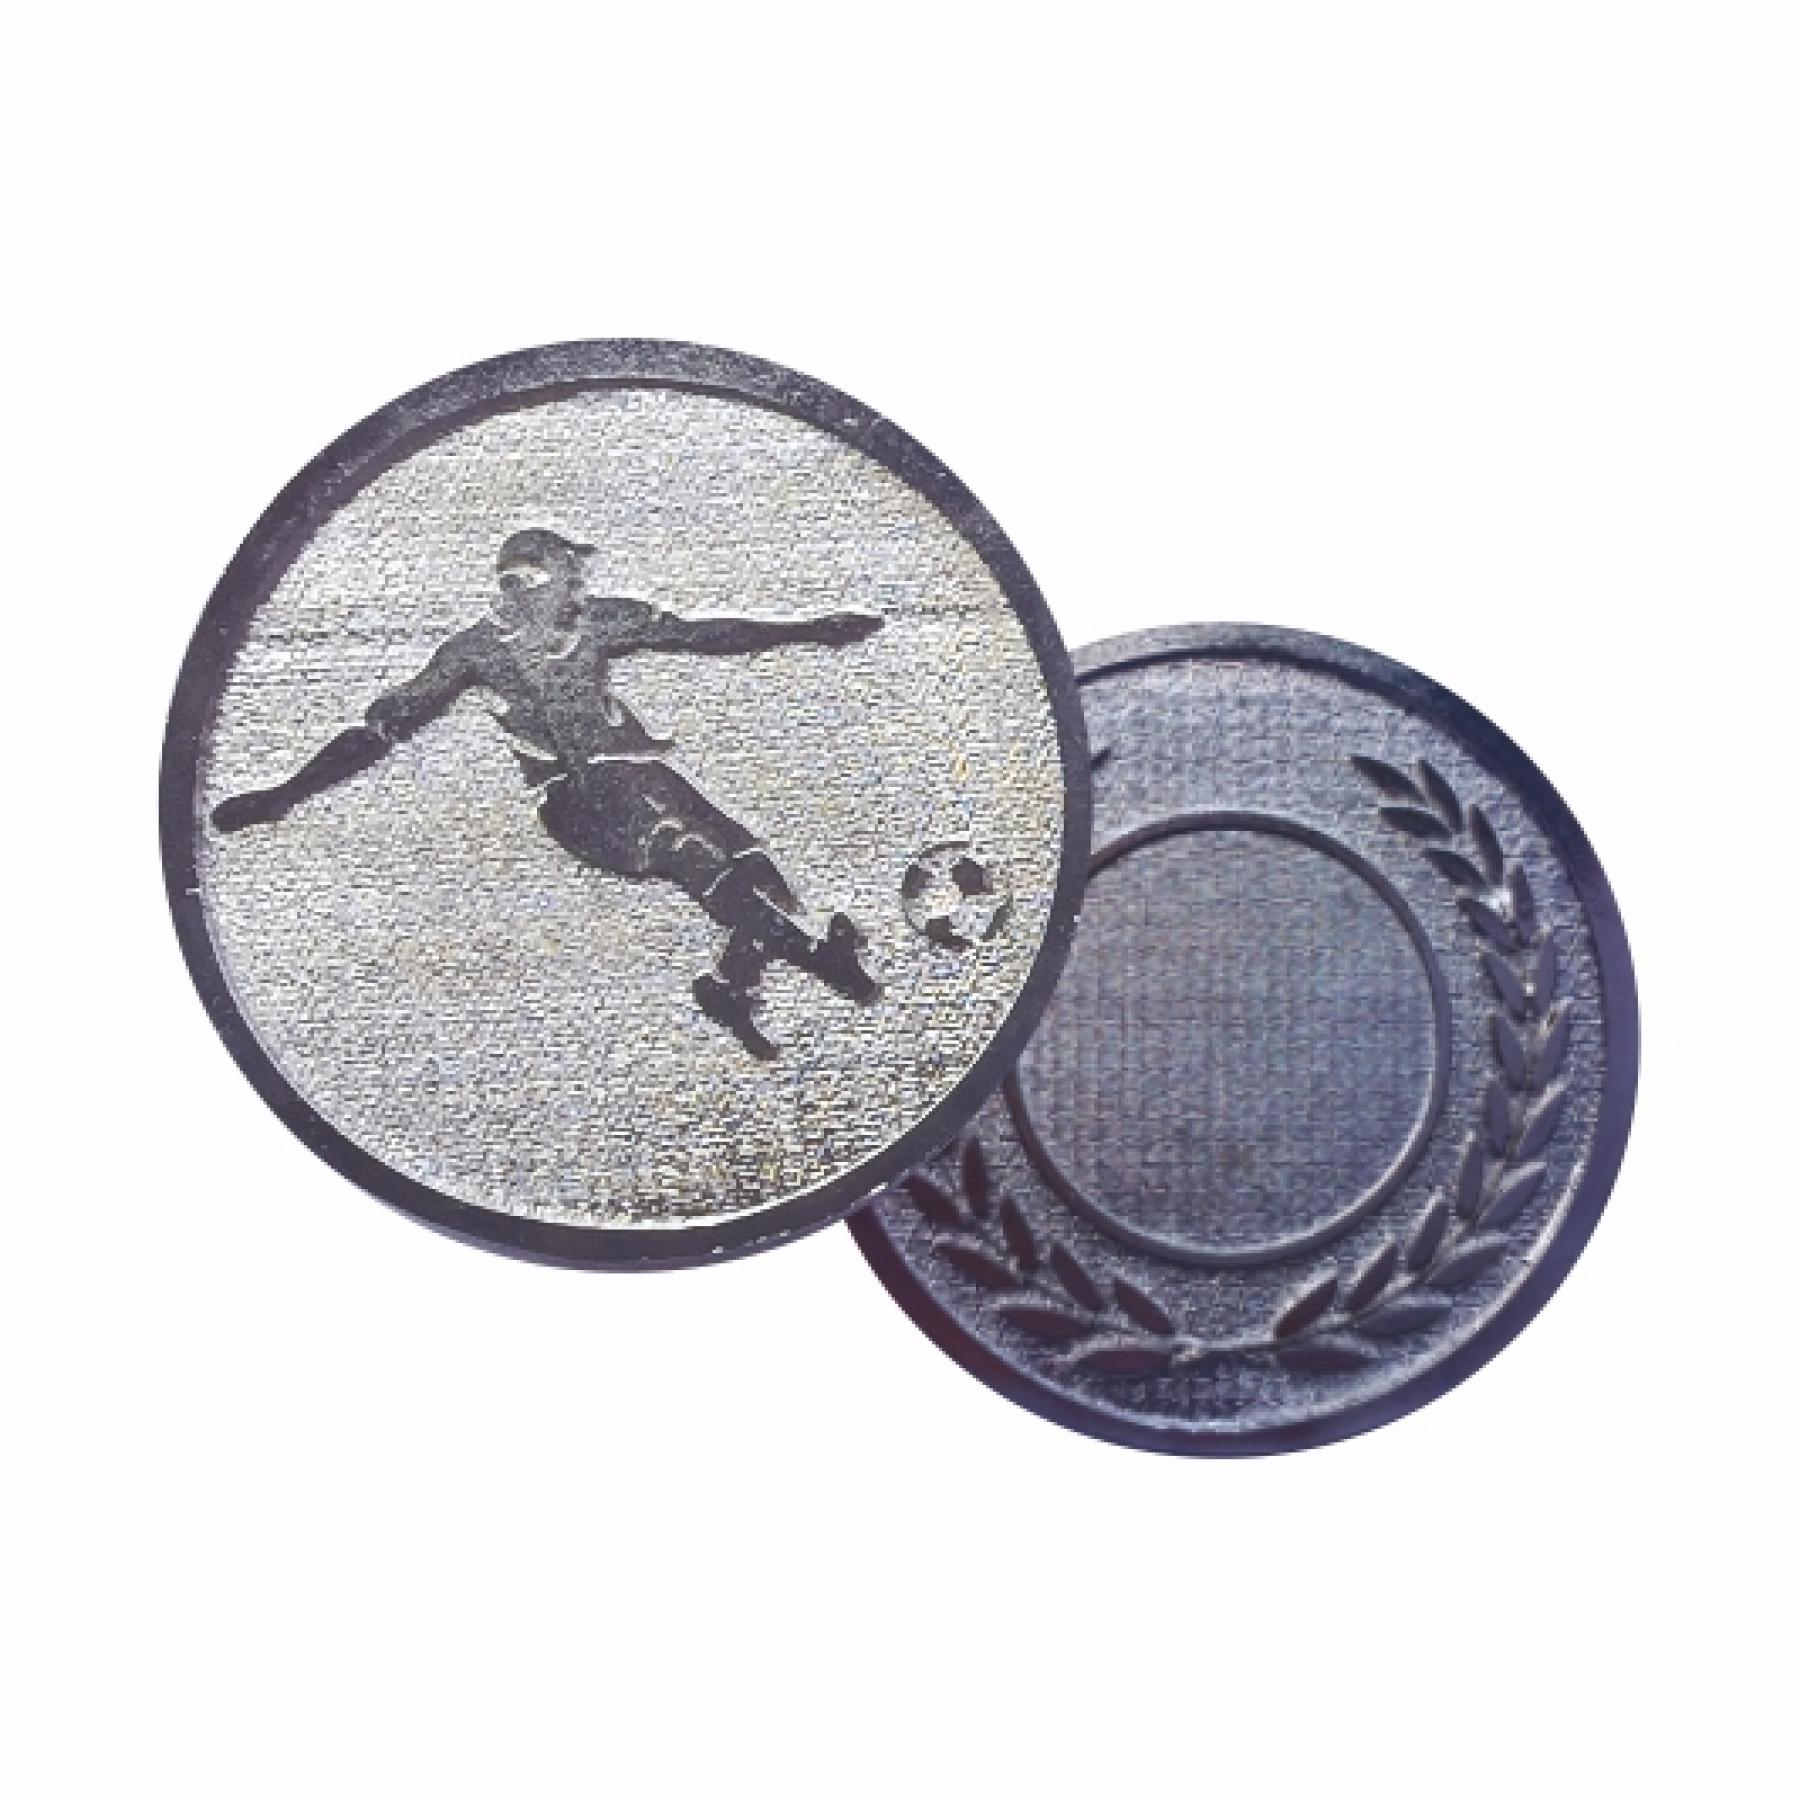 Xco Plated Medals Soccer Silver